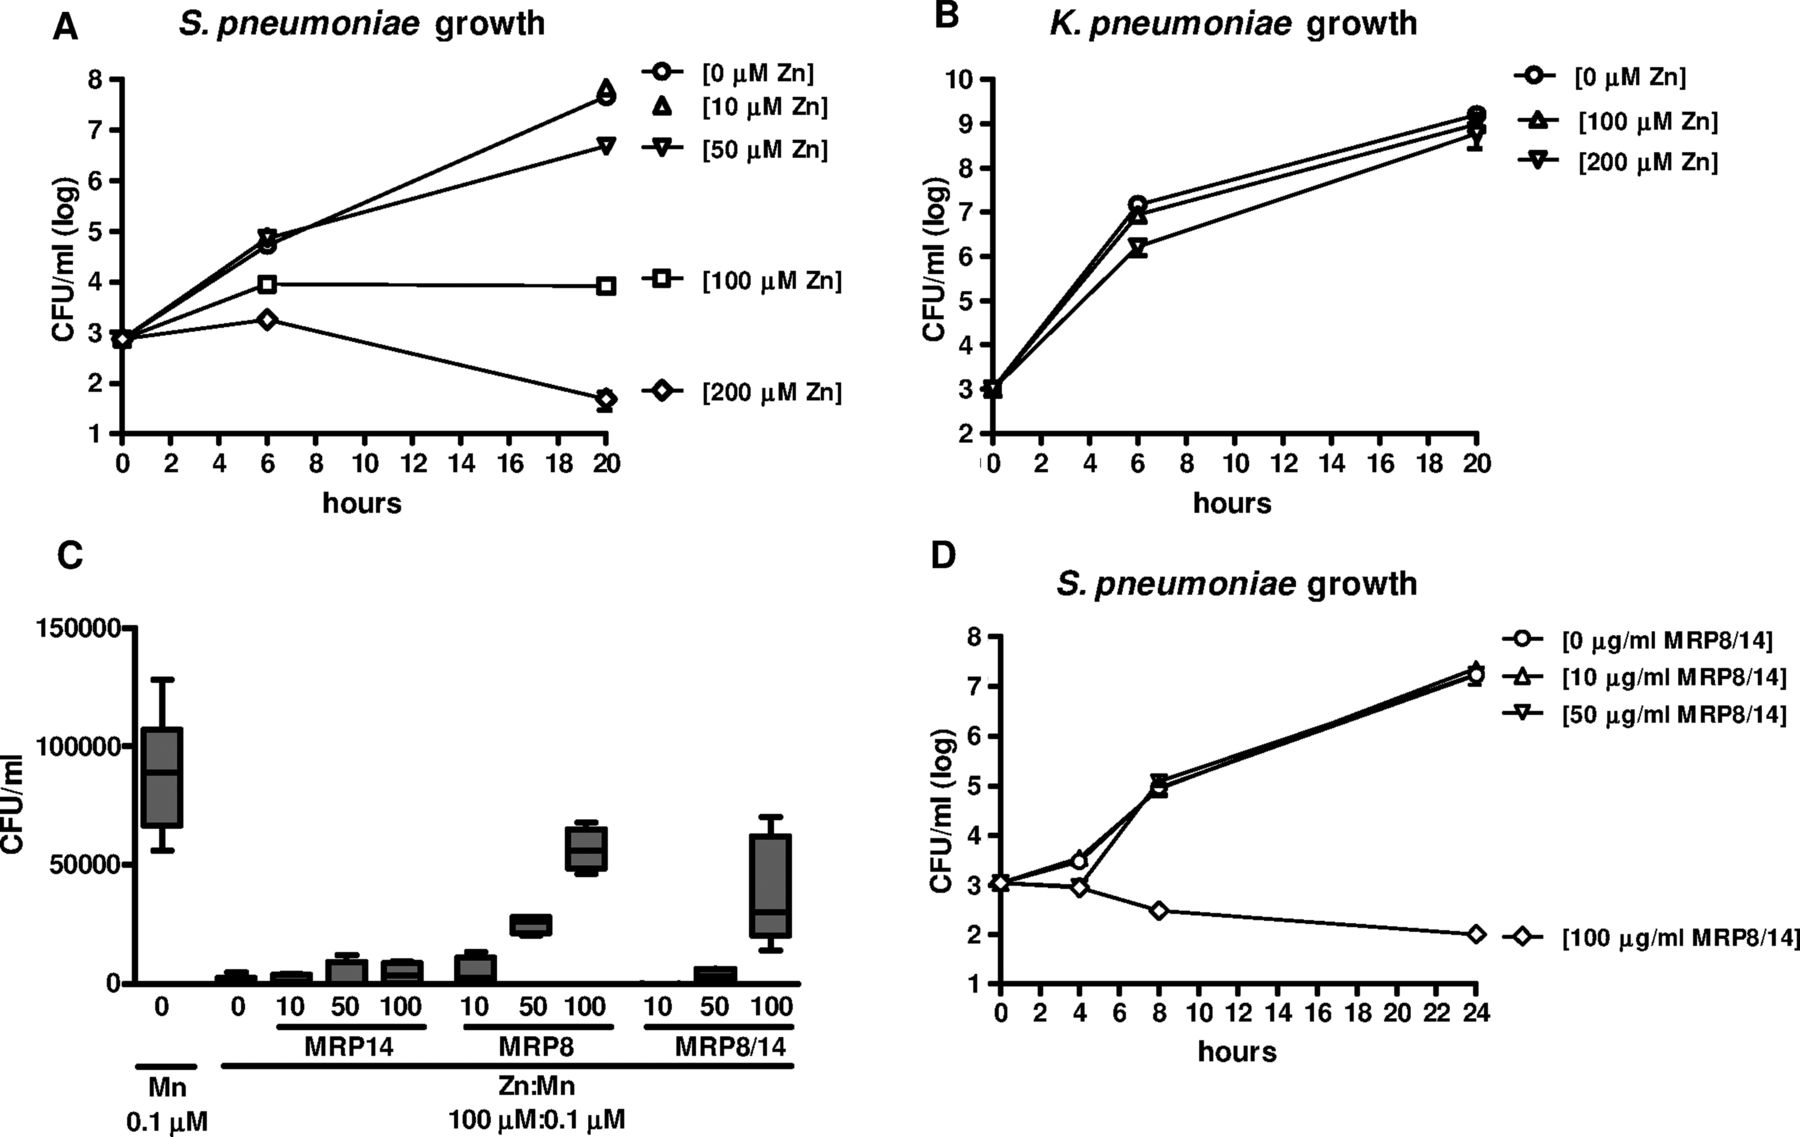 Myeloid Related Protein 8 14 Facilitates Bacterial Growth During Pneumococcal Pneumonia